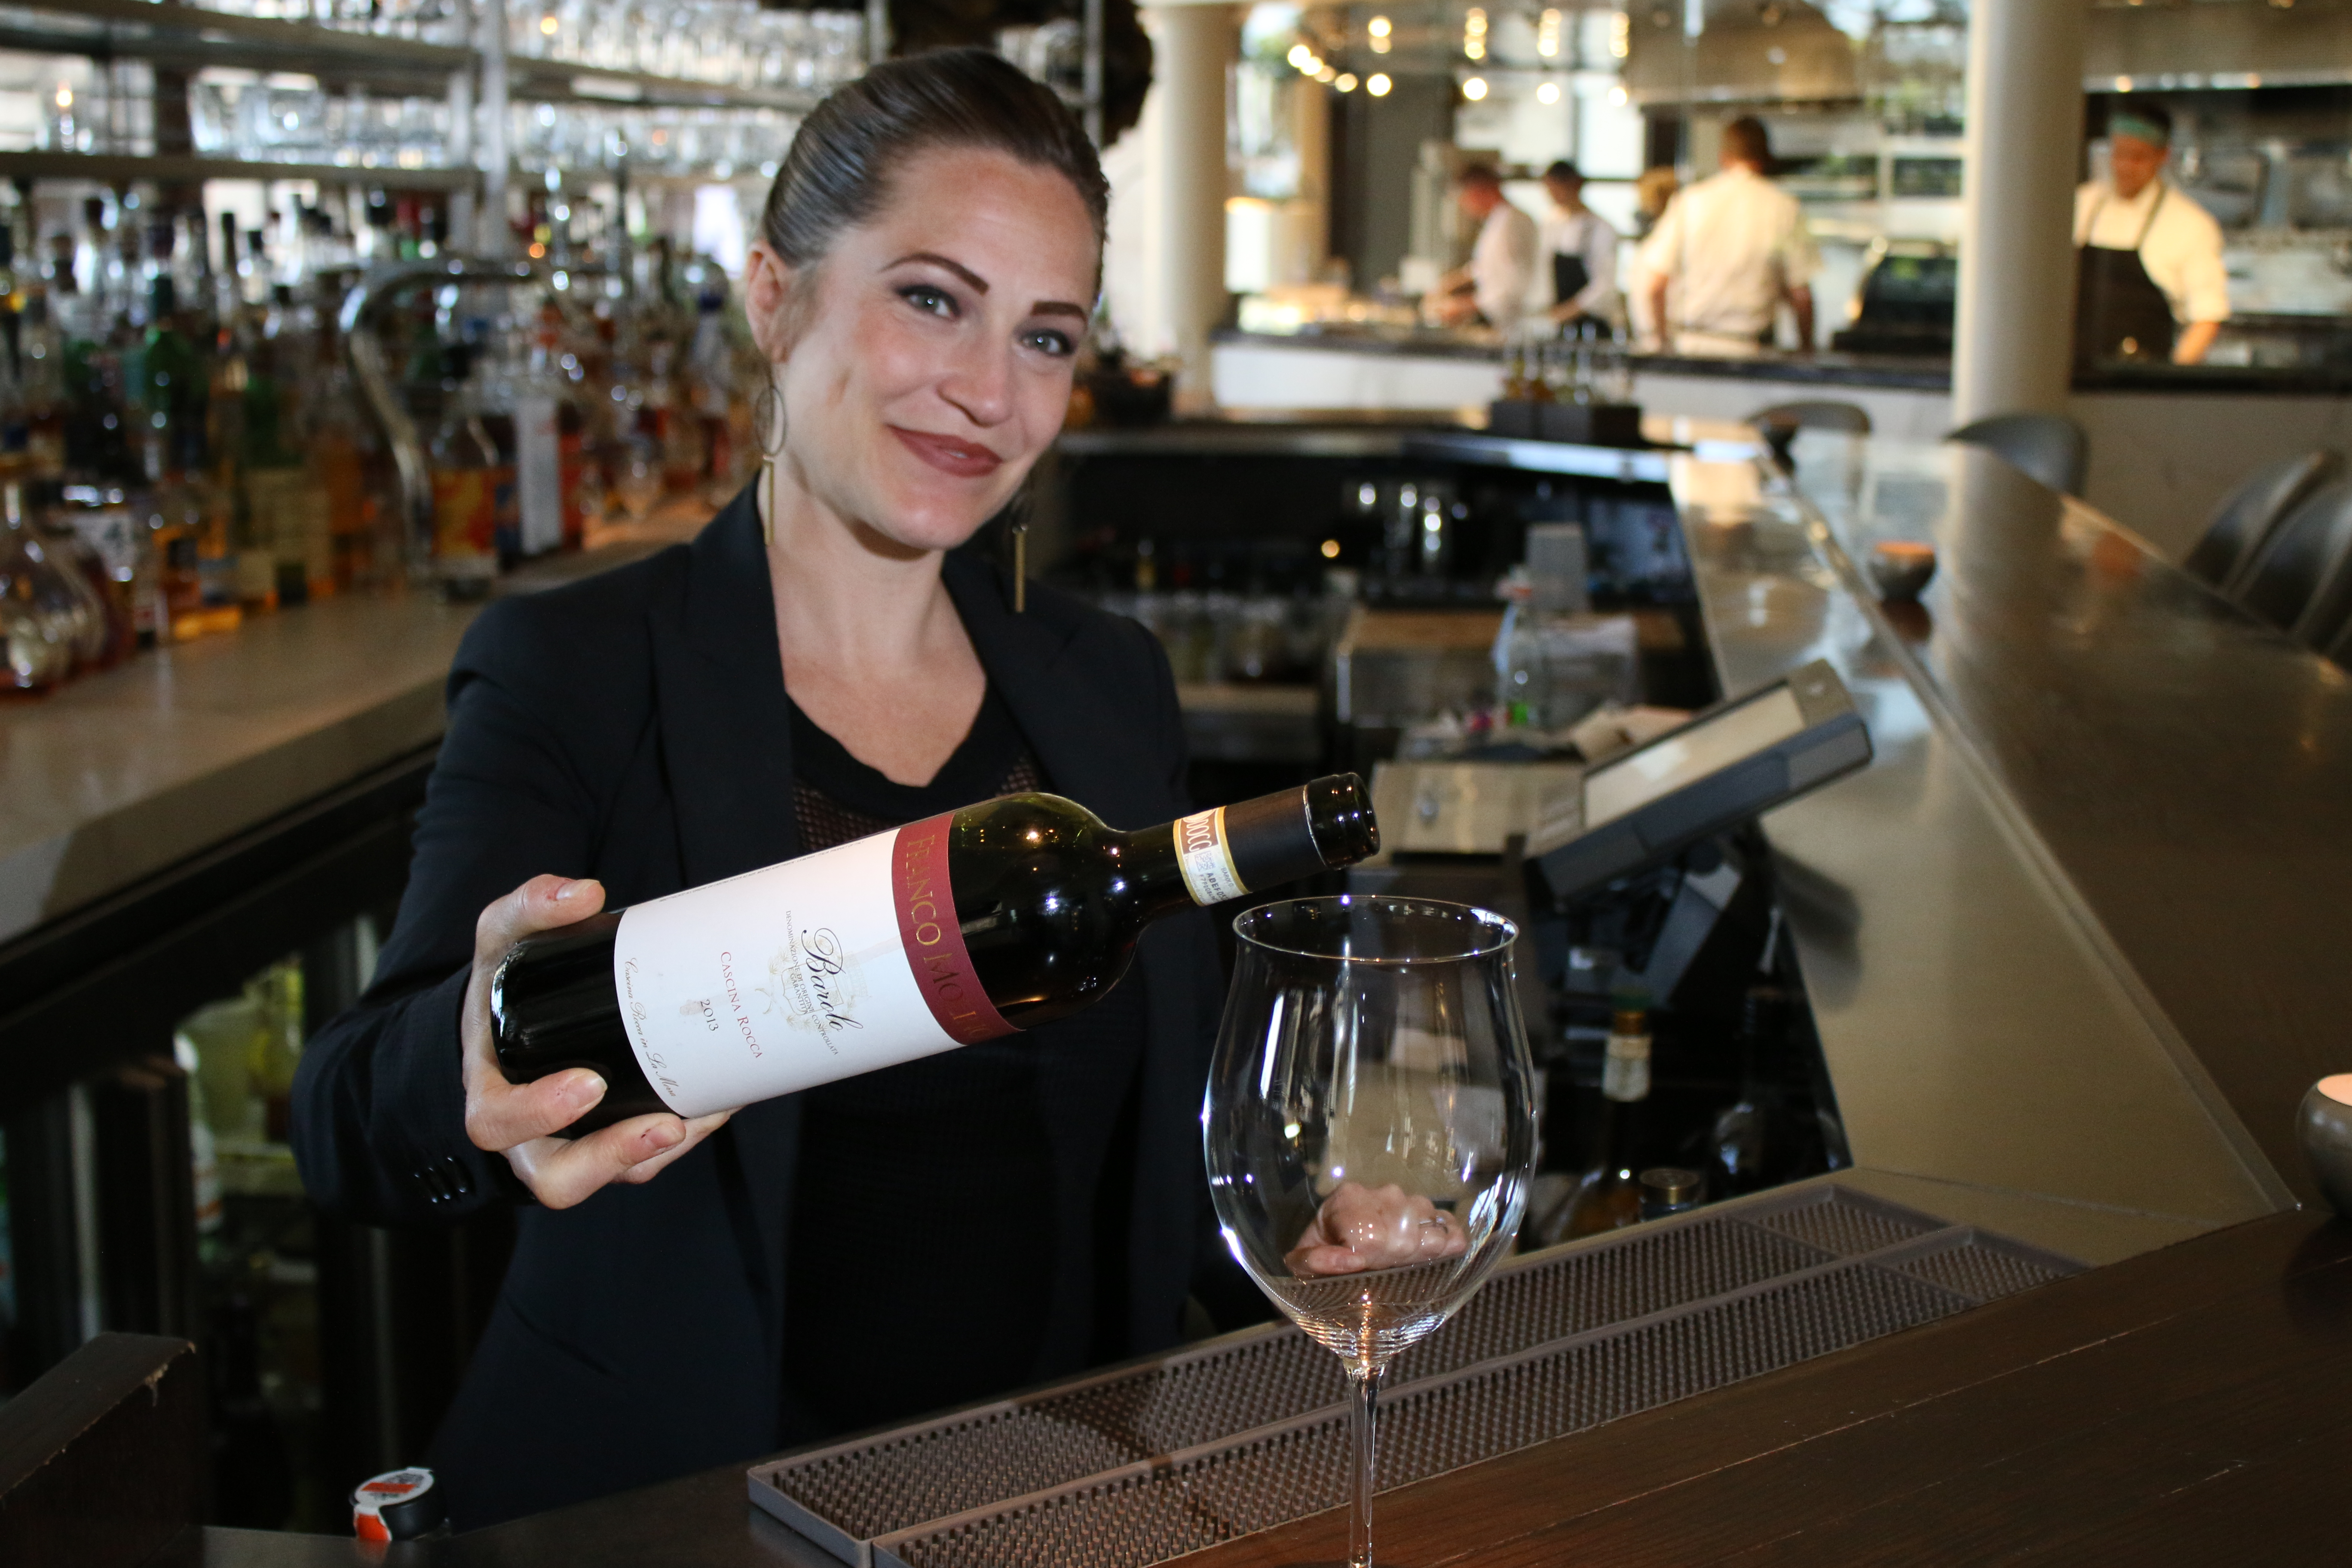 Rachel Lowe is the sommelier at Spiaggia restaurant.